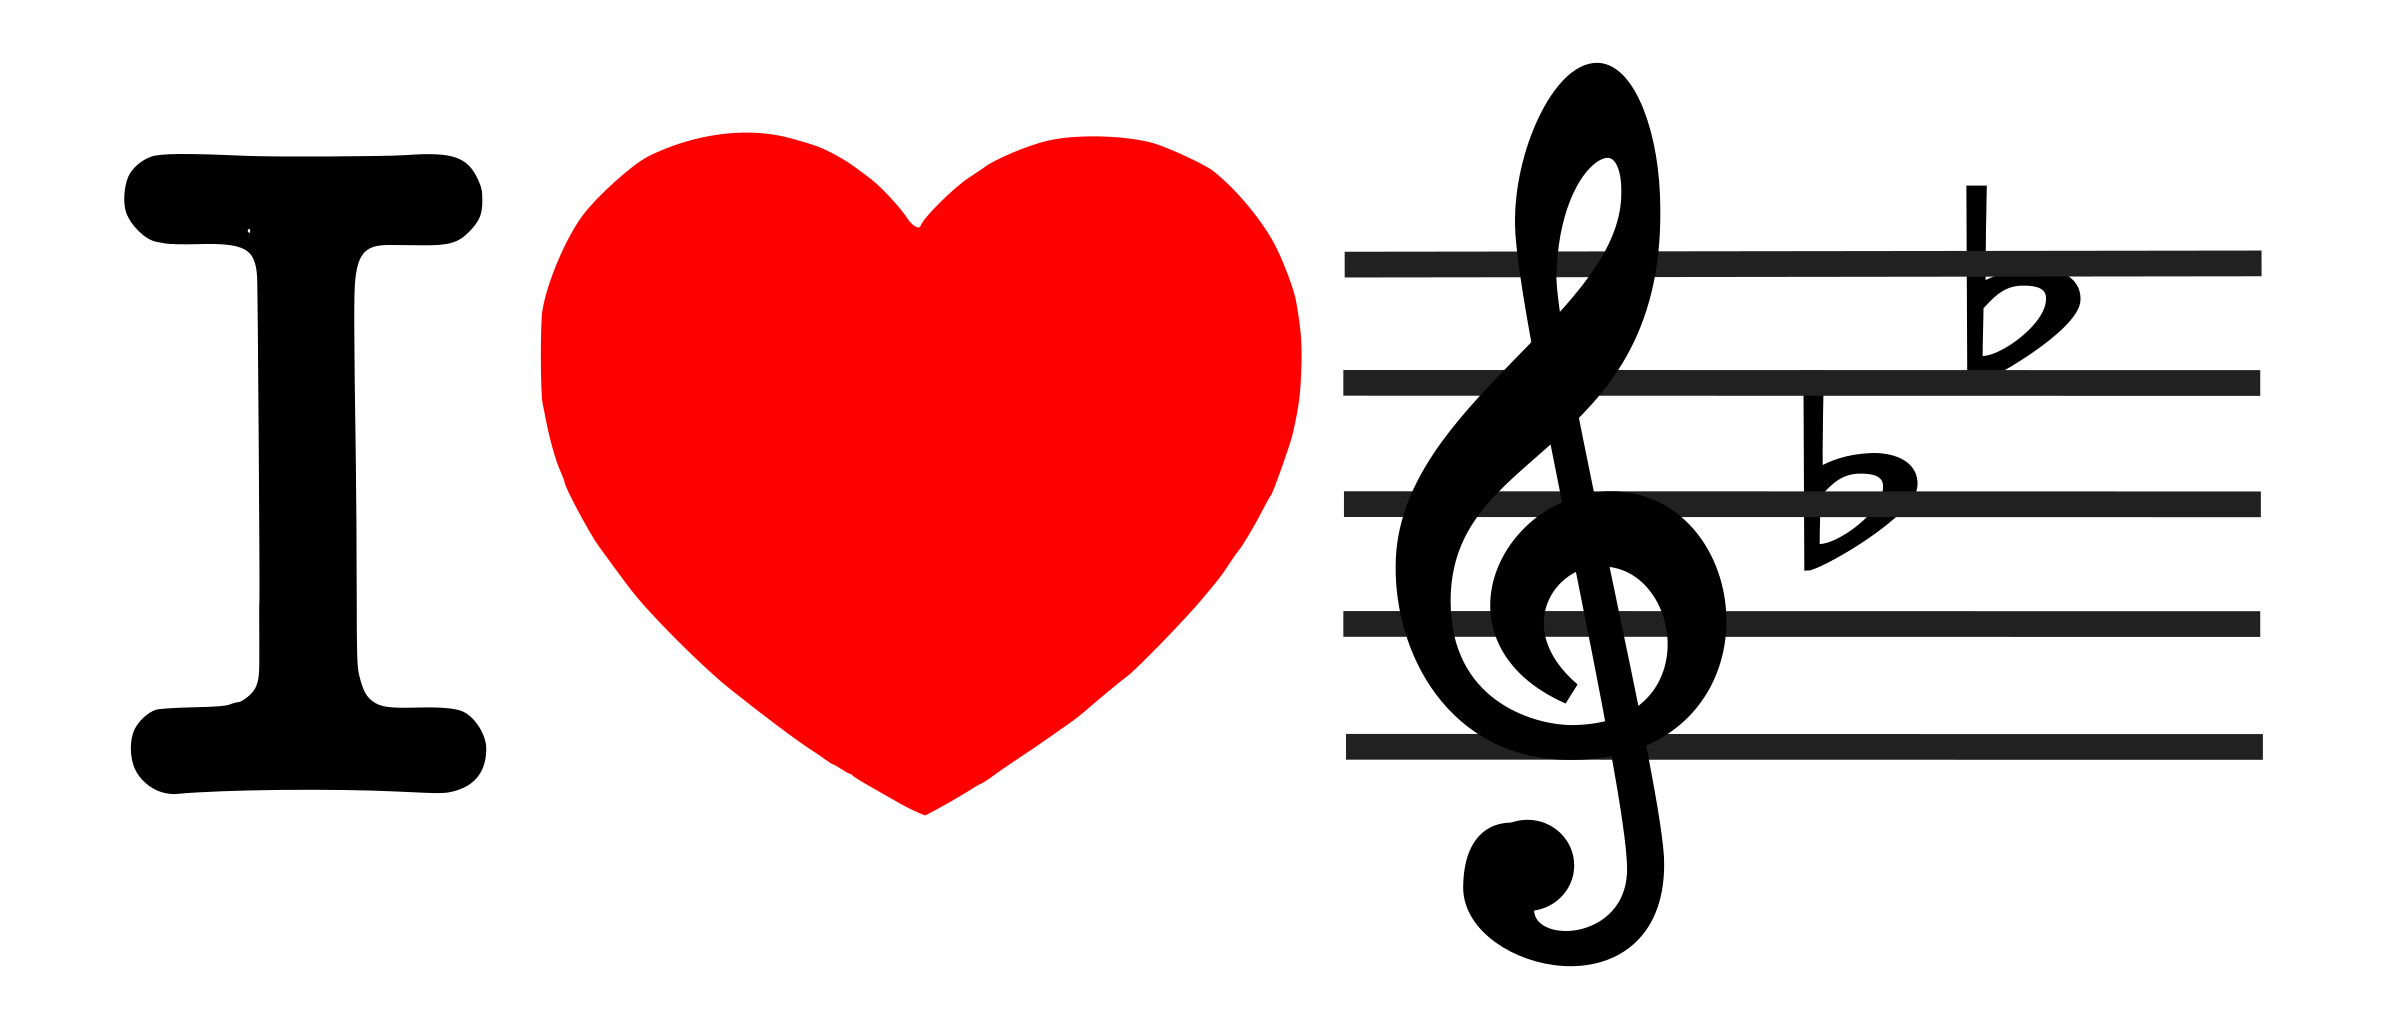 Heart music clipart black and white stock Clipart - I love music (I heart Bflat) black and white stock